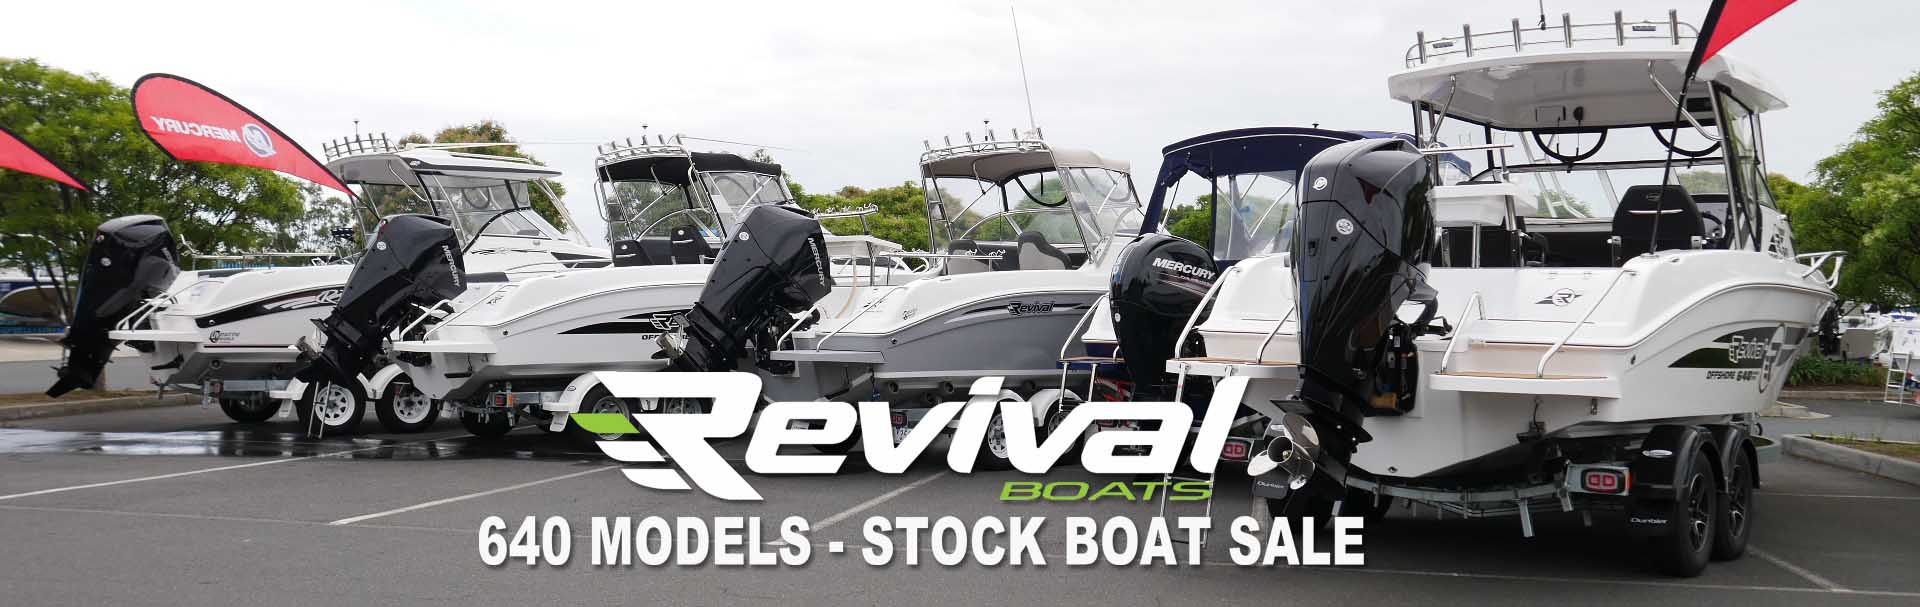 Revival 640 STock Boats SALE